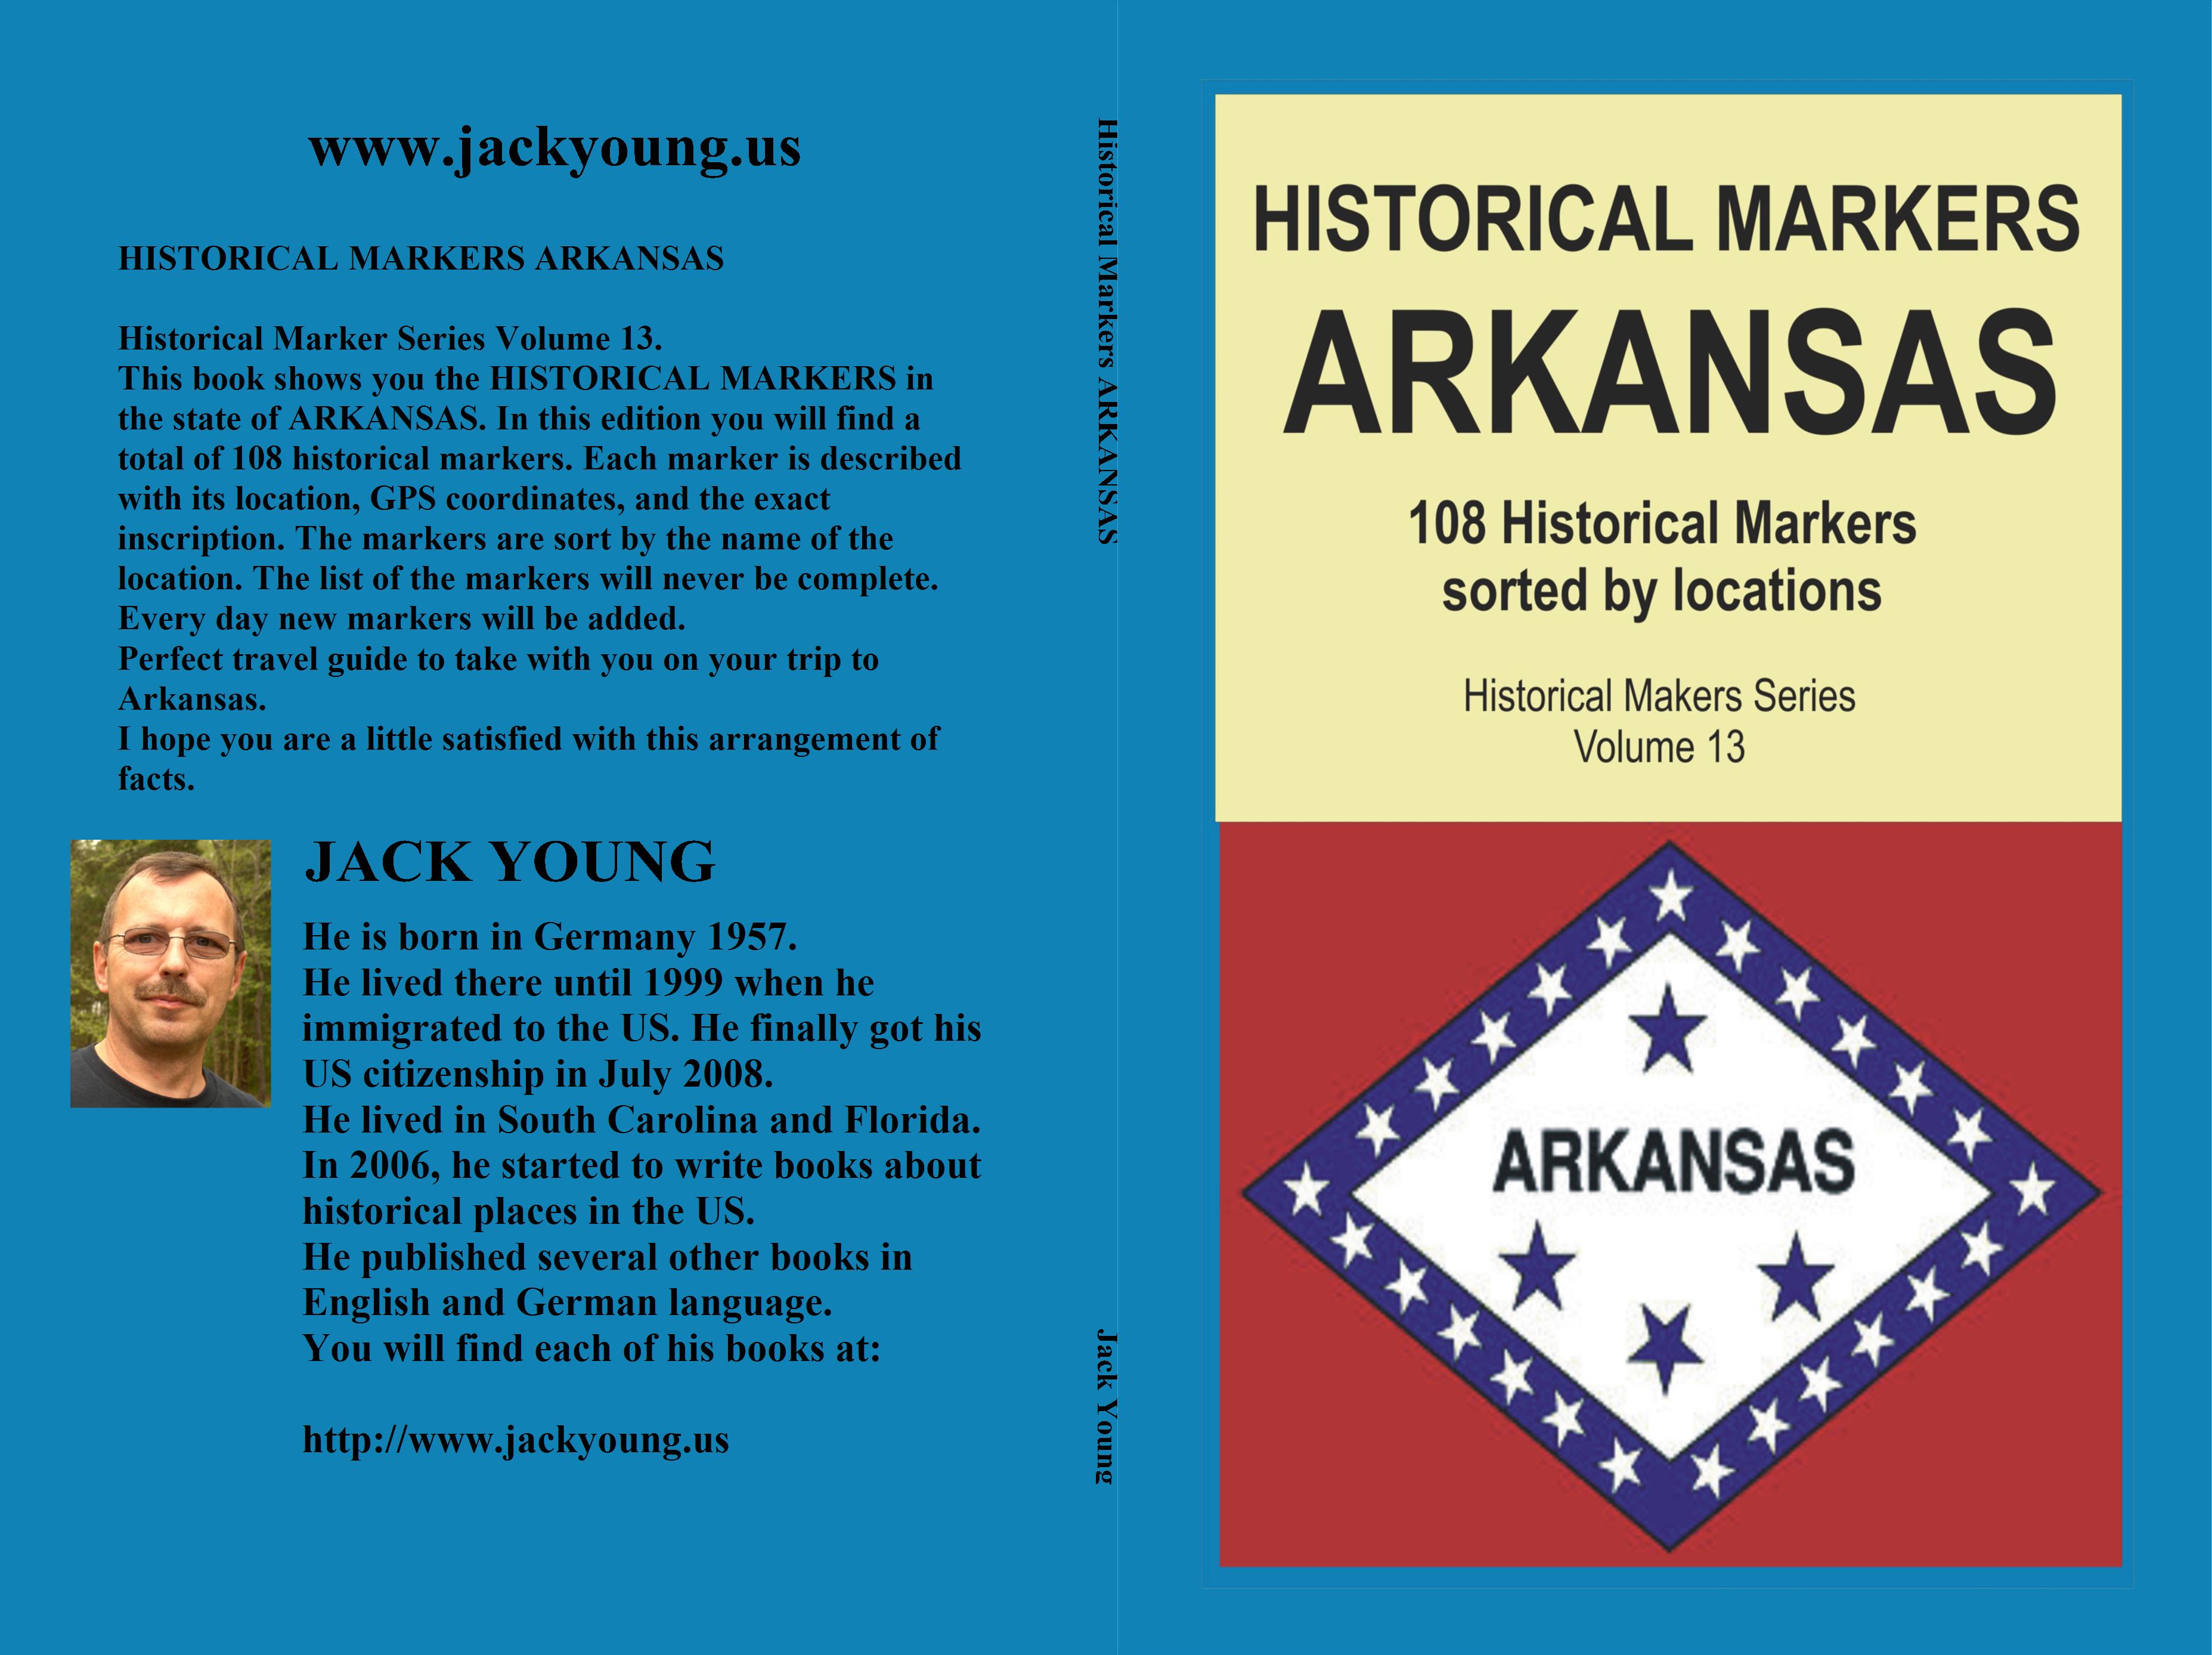 Historical Markers ARKANSAS cover image